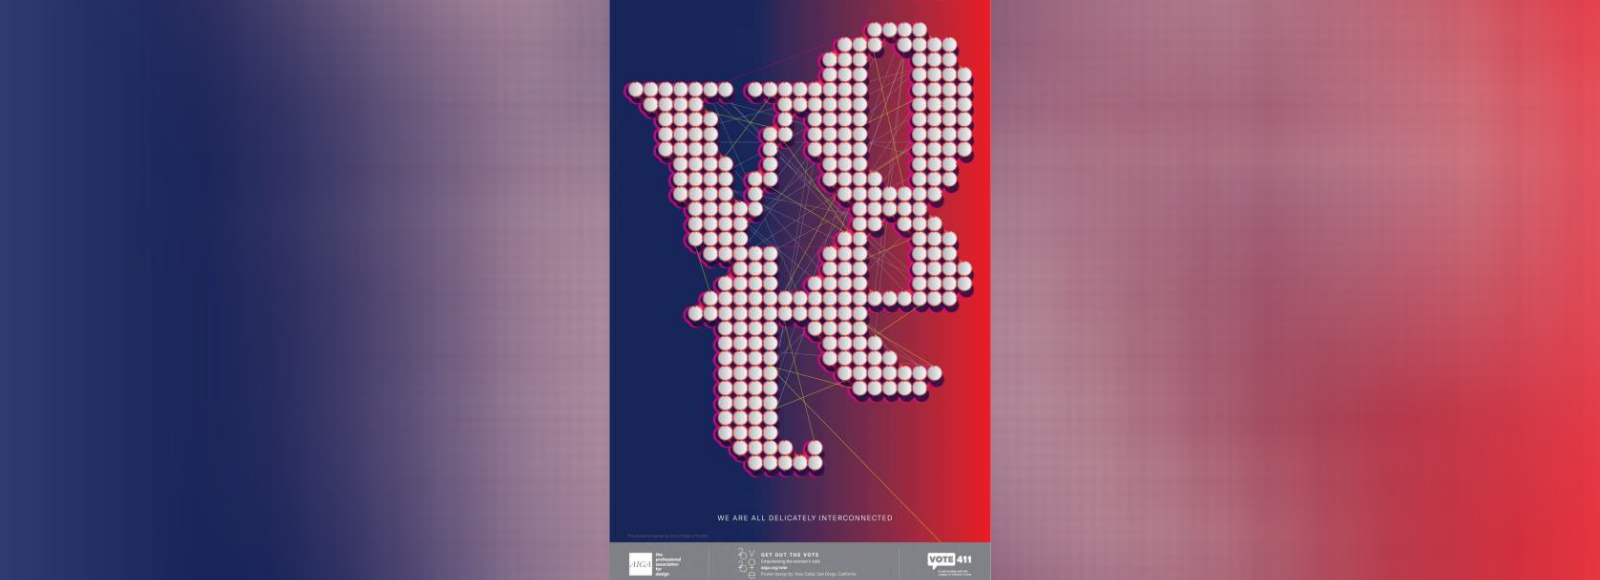 THE BUZZ: Get Out the Vote – Using Art to Reflect On Our History and Empower the Future